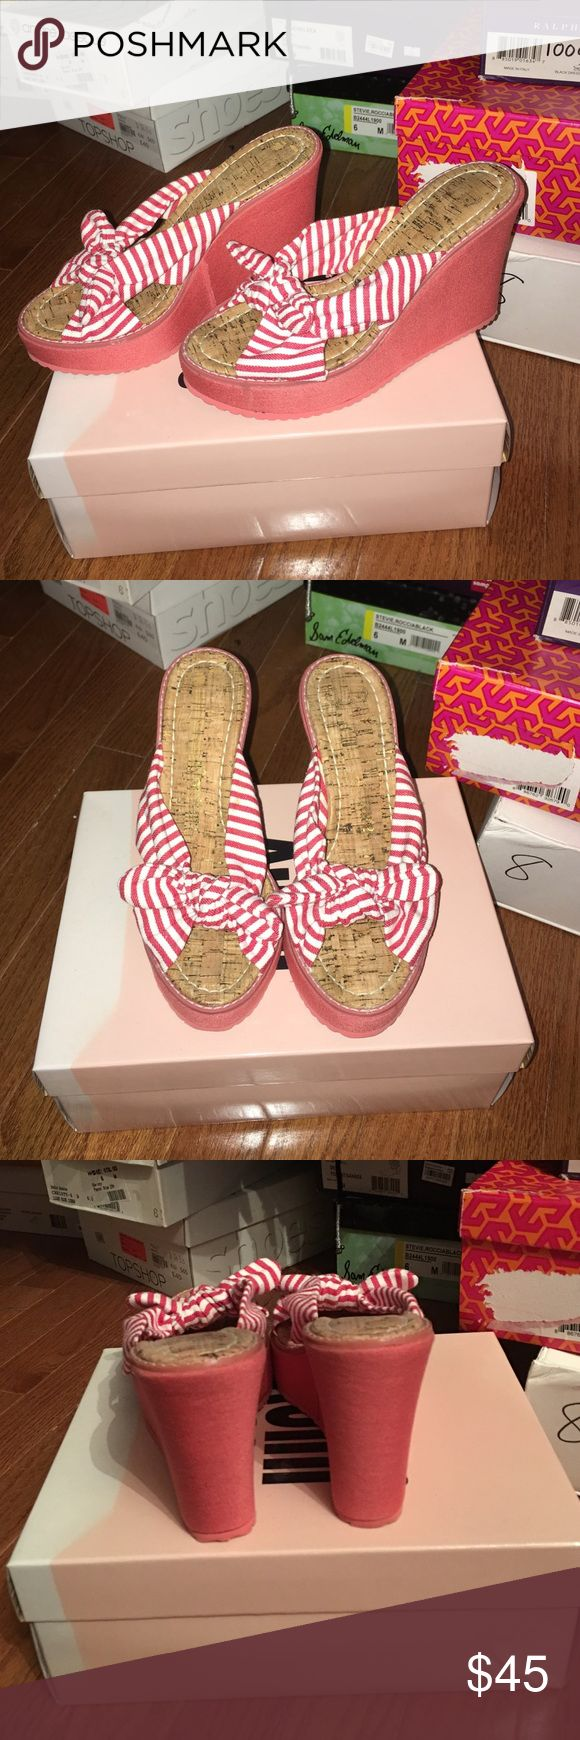 """Juicy Couture Red Striped Wedges. Size 6 Juicy Couture wedges in size 6. Red and white striped tie details. Wedge is 4"""" at tallest point with a 1"""" front platform. Great condition. Purchased at Bloomingdales. Comes with original box. Juicy Couture Shoes Wedges"""